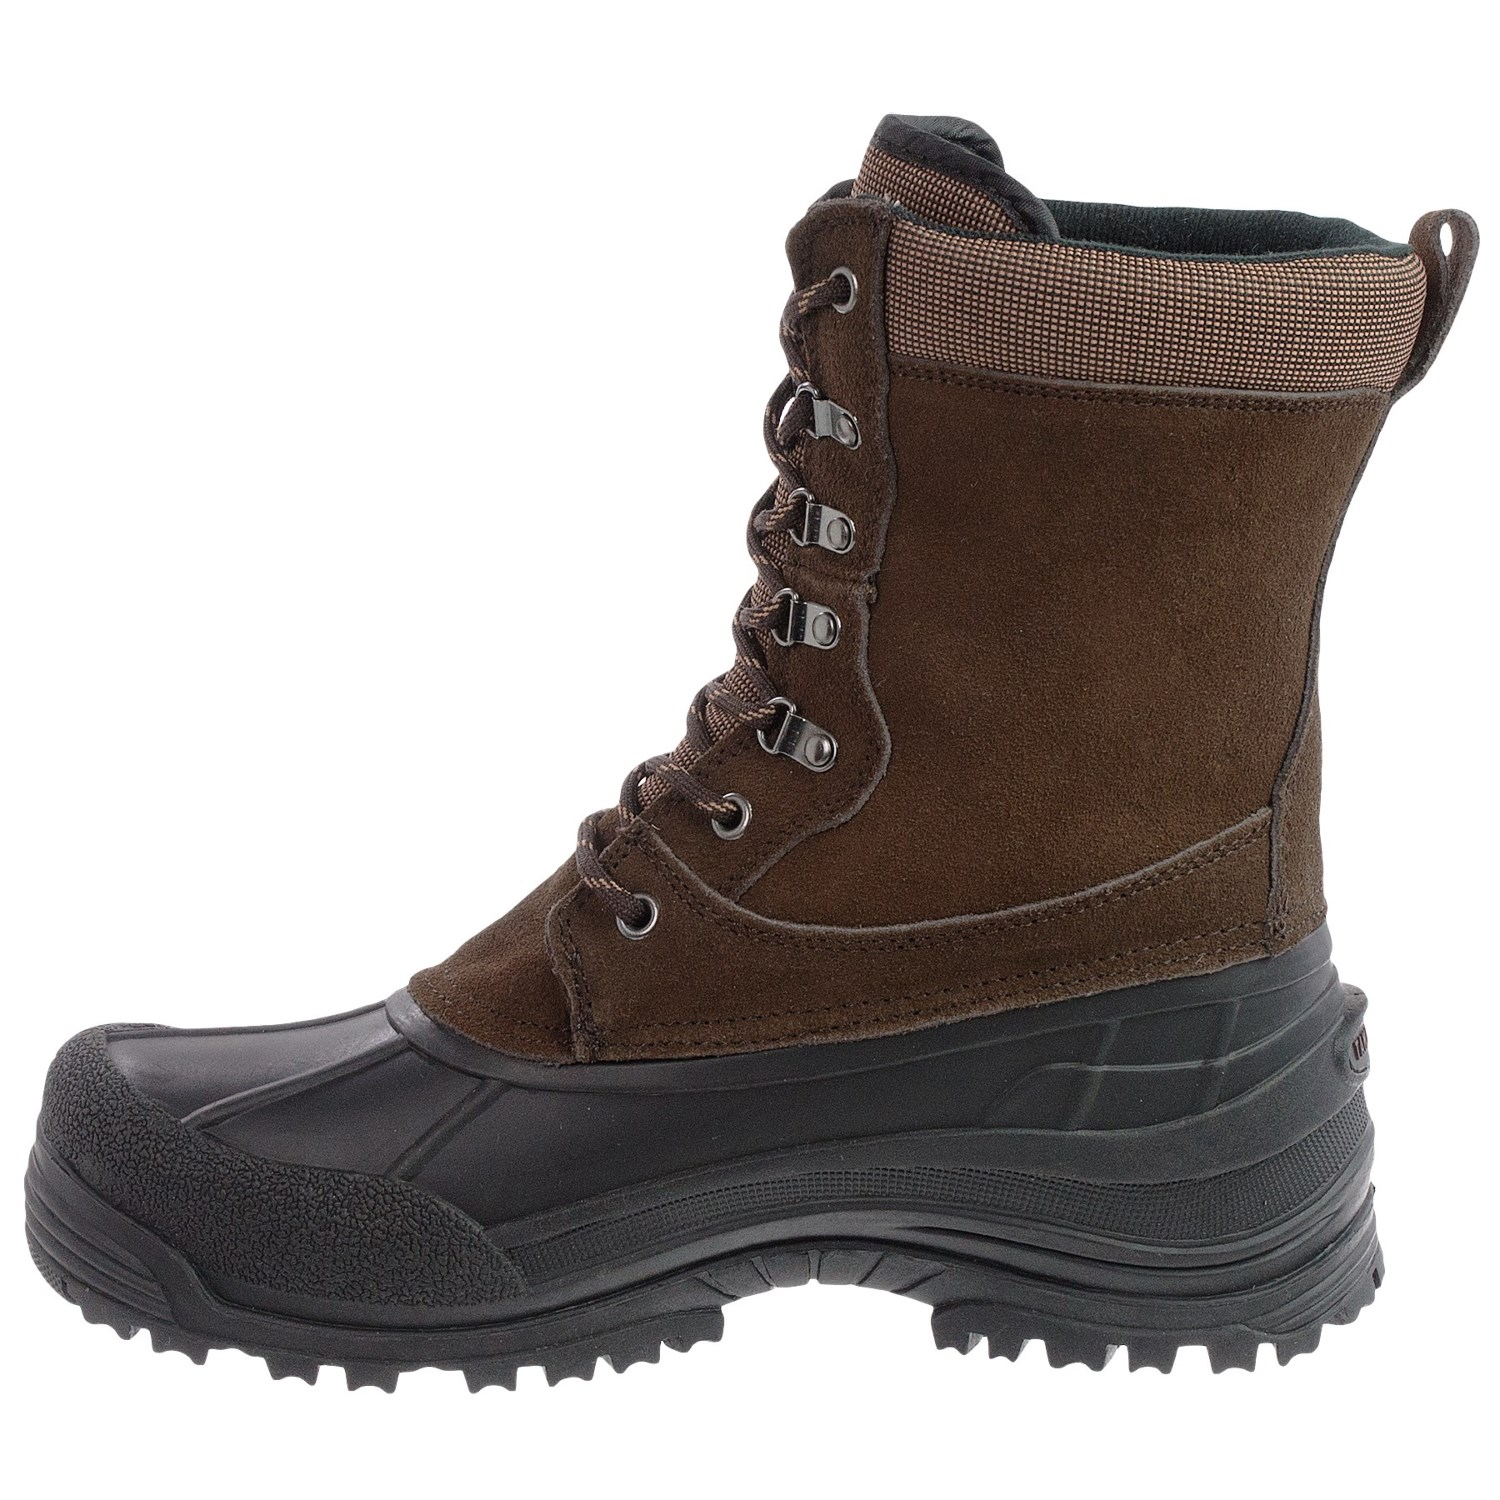 Tamarack Tundra Suede Pac Boots (For Men) - Save 67%